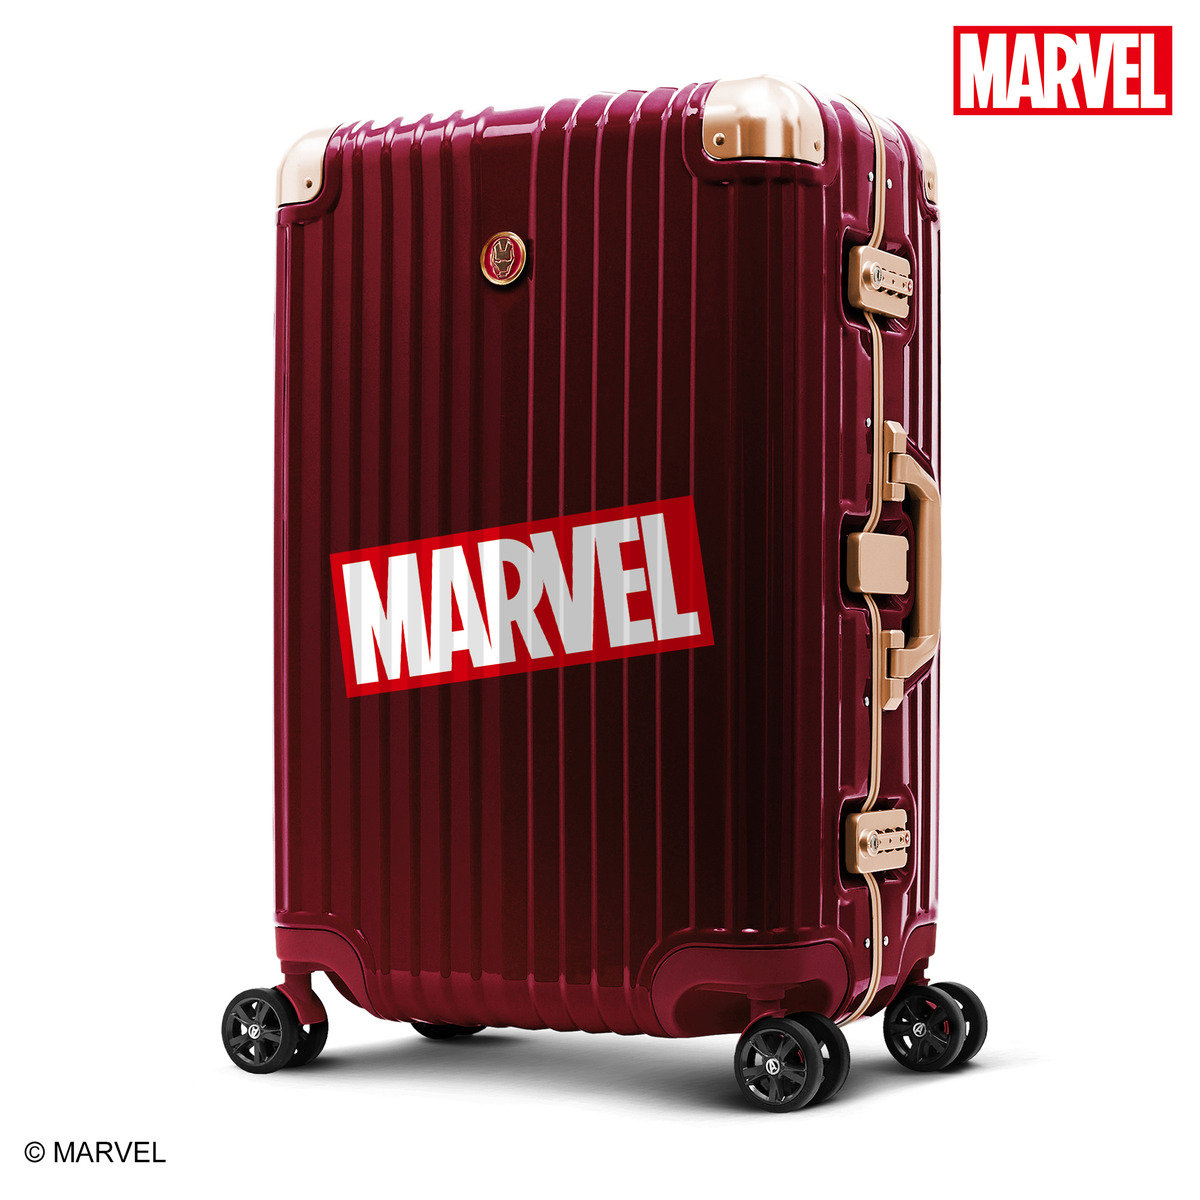 "Avengers IRON MAN 20"" Aluminum Frame Luggage(Licensed by Disney)"